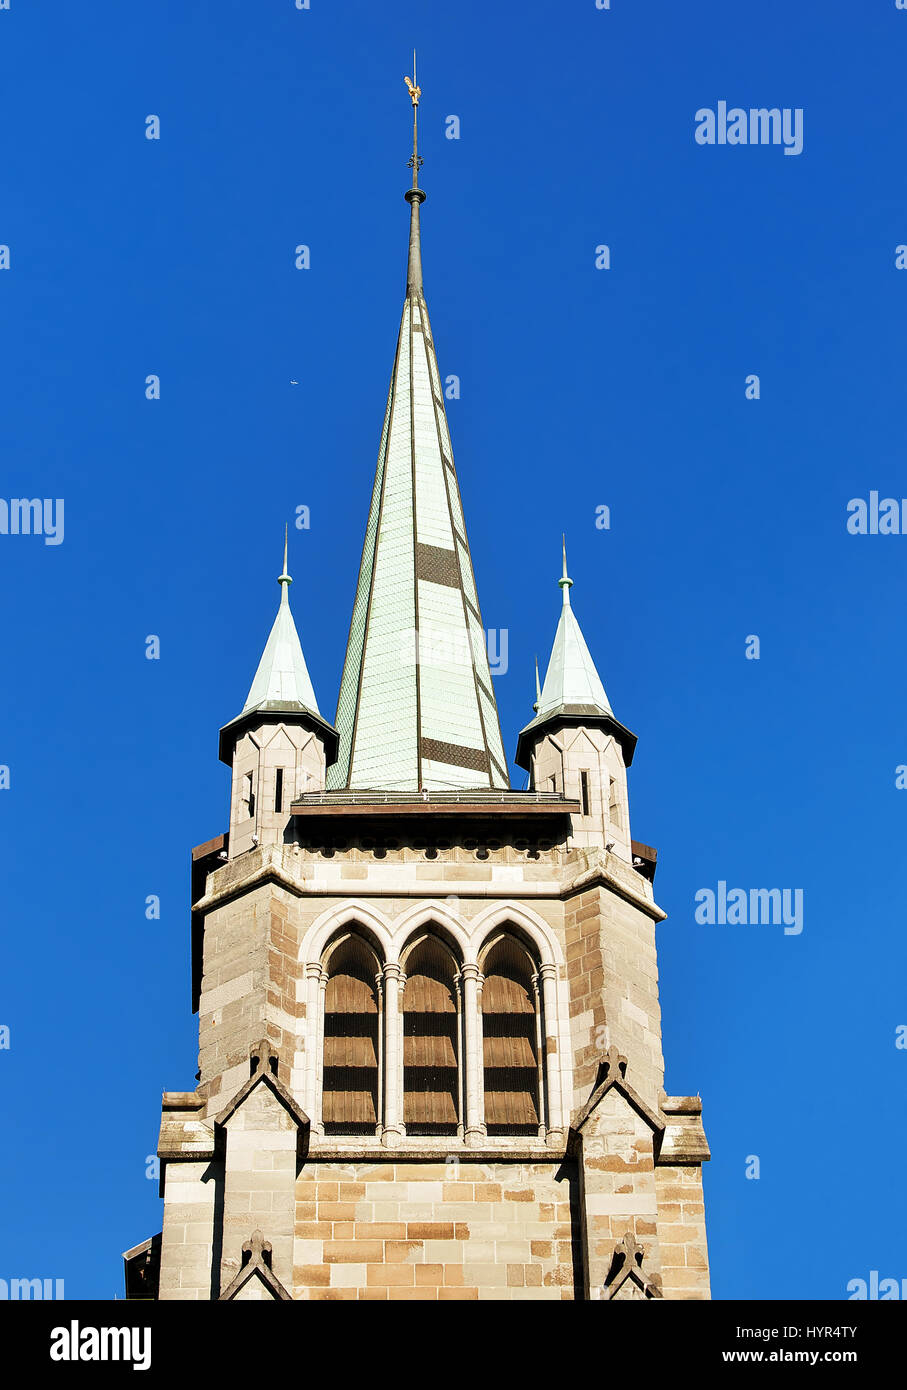 Steeple of St Francois Church in Lausanne, Switzerland. Seen from Le Flon district - Stock Image